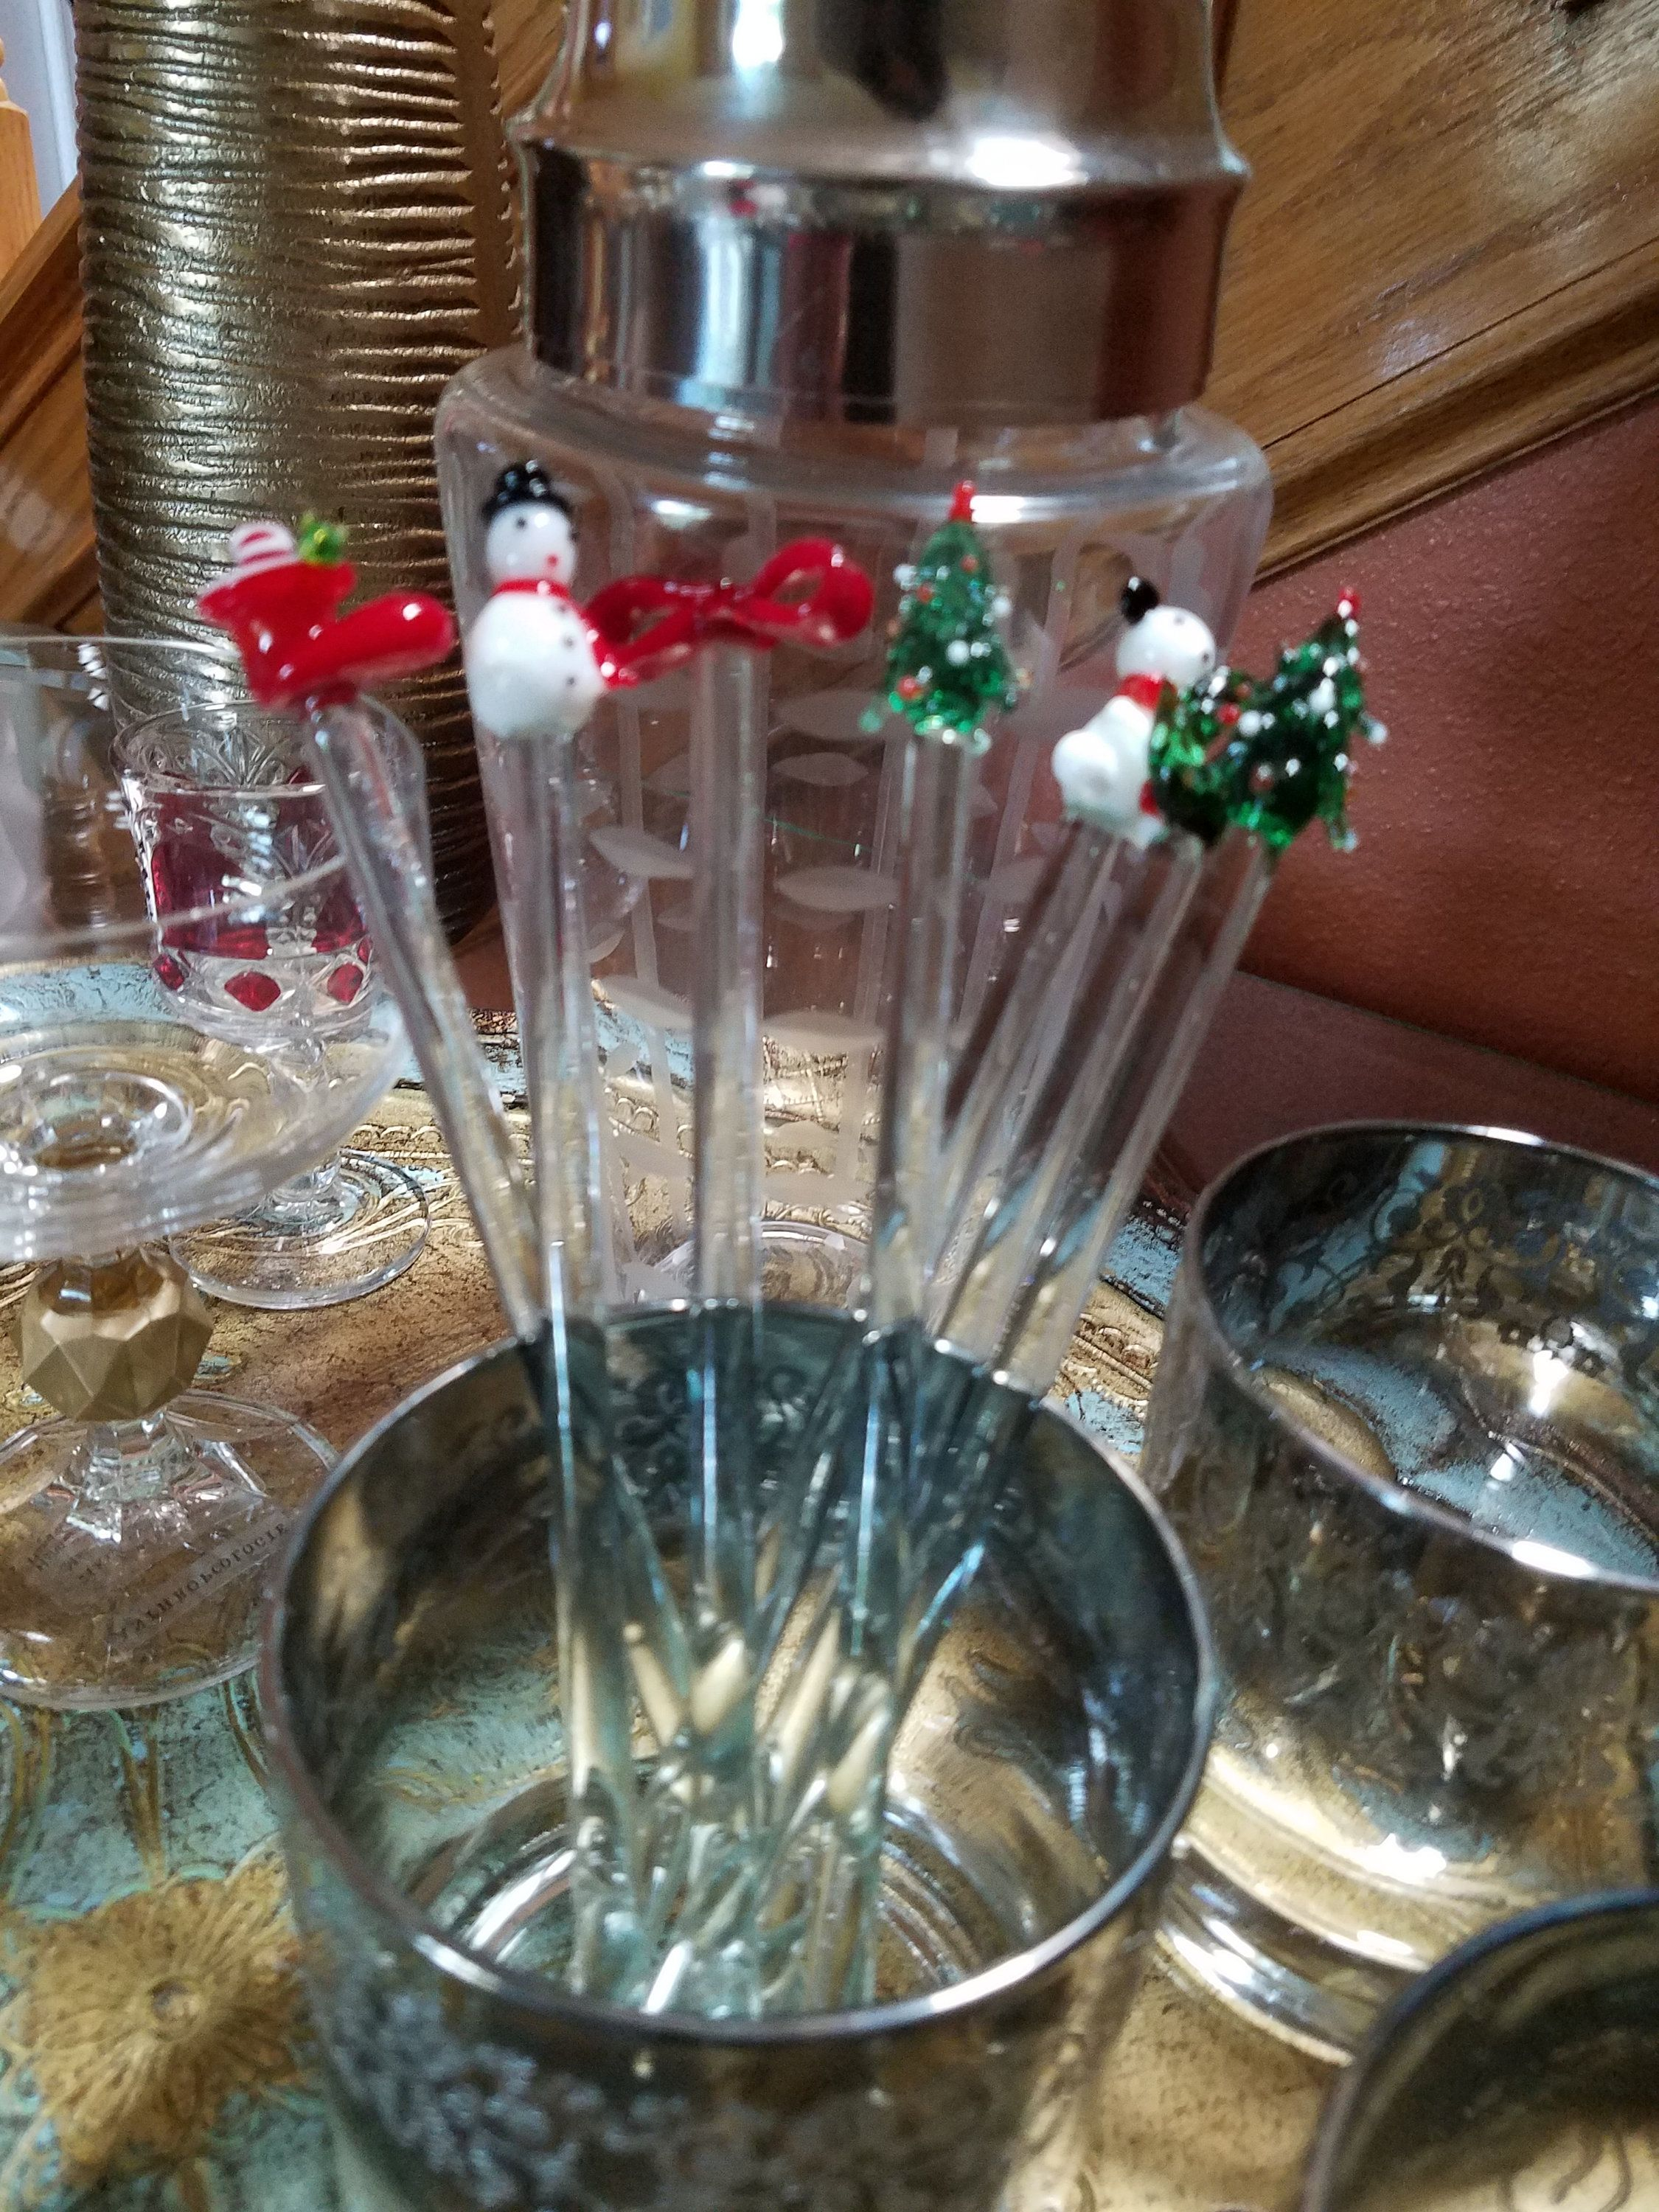 Holiday 8 Glass Drink Stirrers Cocktail Swizzle Sticks Christmas Cocktails Drink Stirrers Barware Vintage Collectibles Drink Sticks Christmas Cocktails Drink Stirrers Swizzle Sticks